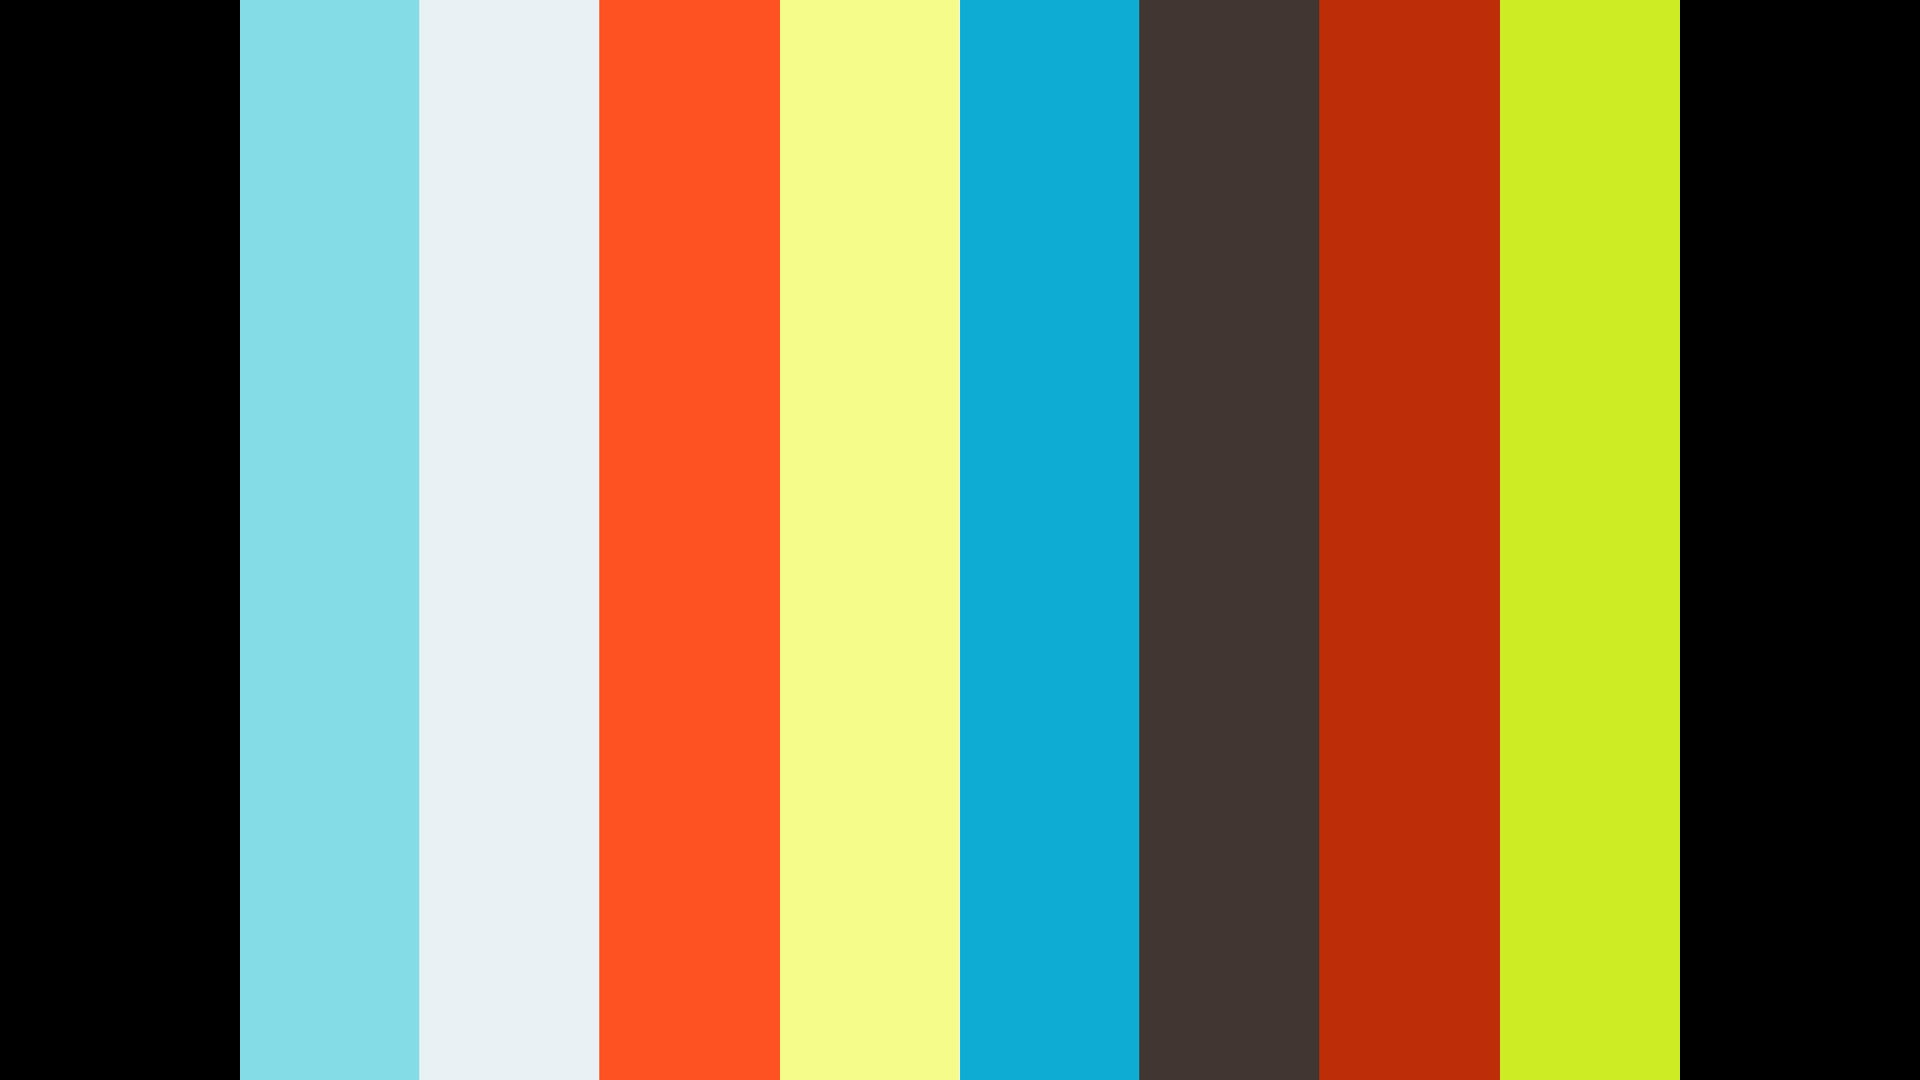 Beerspot - Hemsbeer - the beverage from Hemsbach